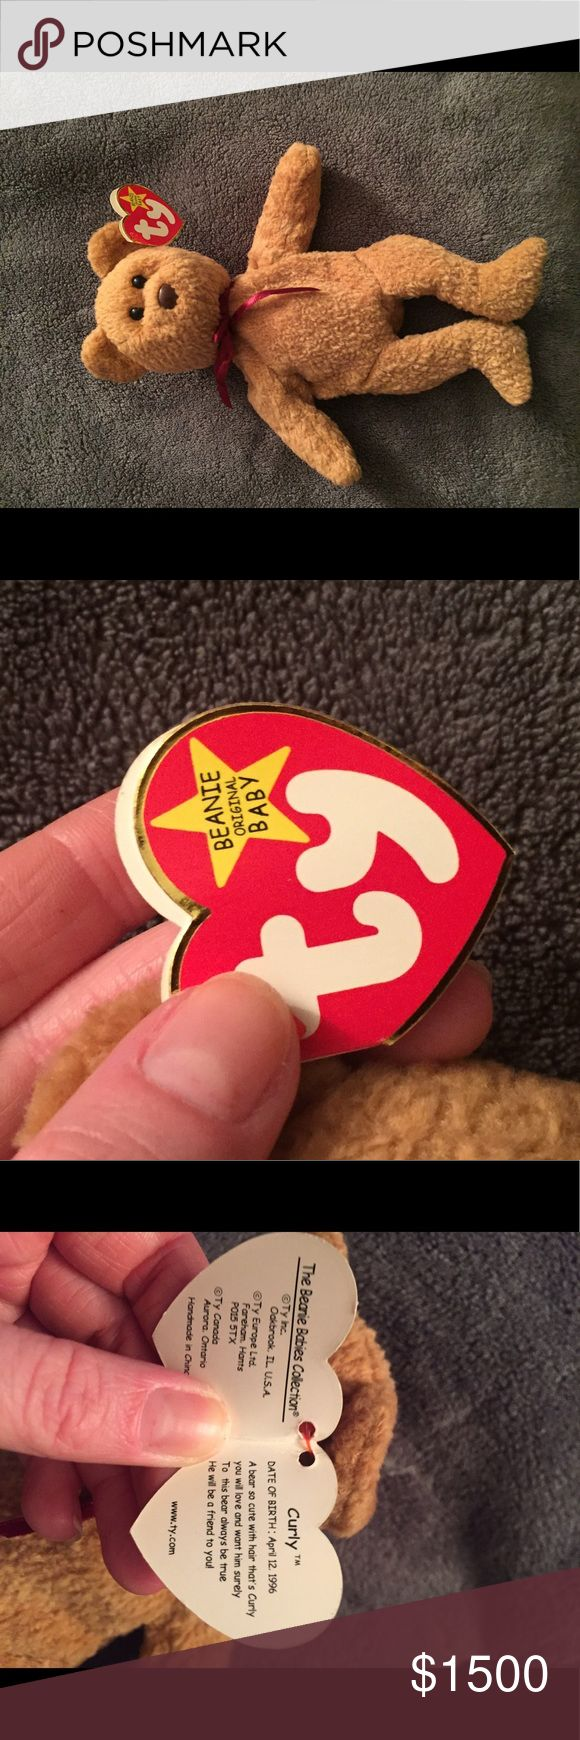 """Very Rare And Retired """"Curly"""" TY Beanie Baby Very Rare And Retired """"Curly"""" TY Beanie Baby. No stamp on inside of tush tag and hologram sticker on tush tag..both indicating limited edition. Other"""